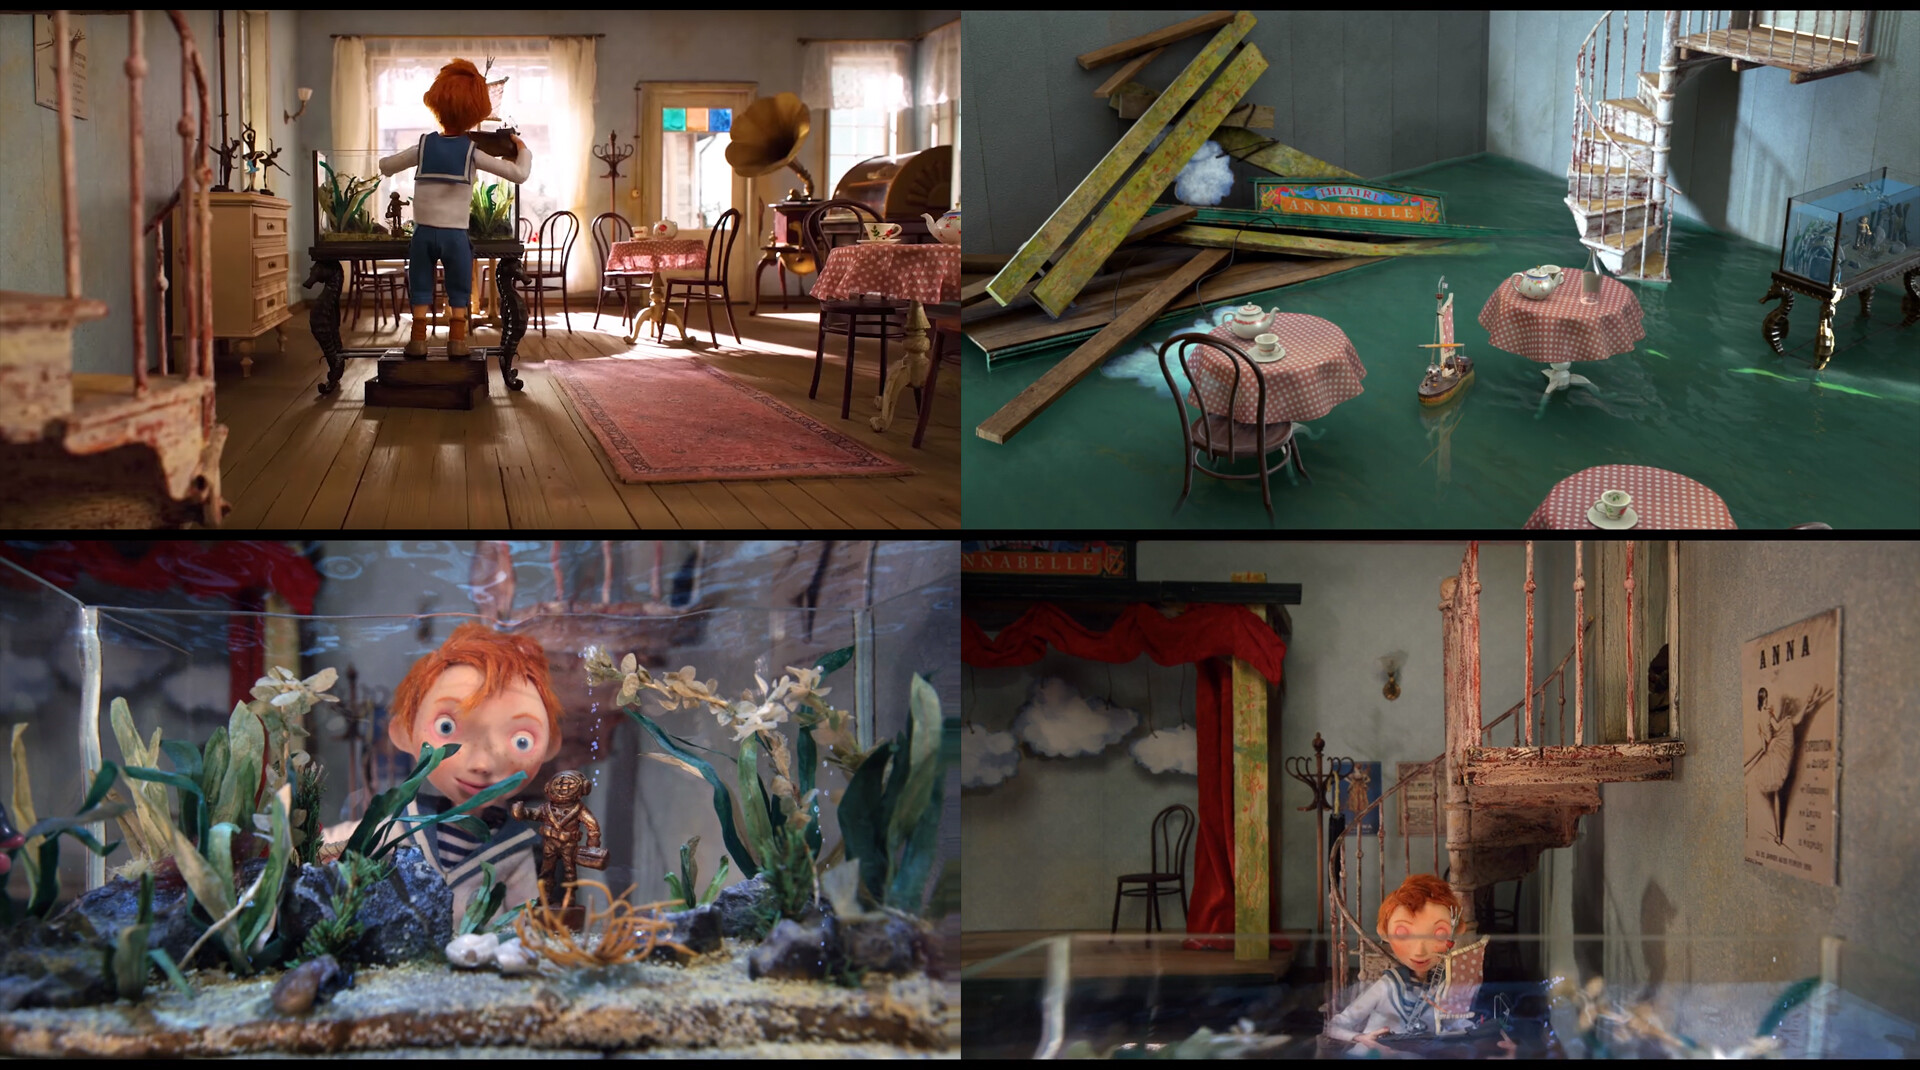 Some images of the real set, second image is a test CG shot